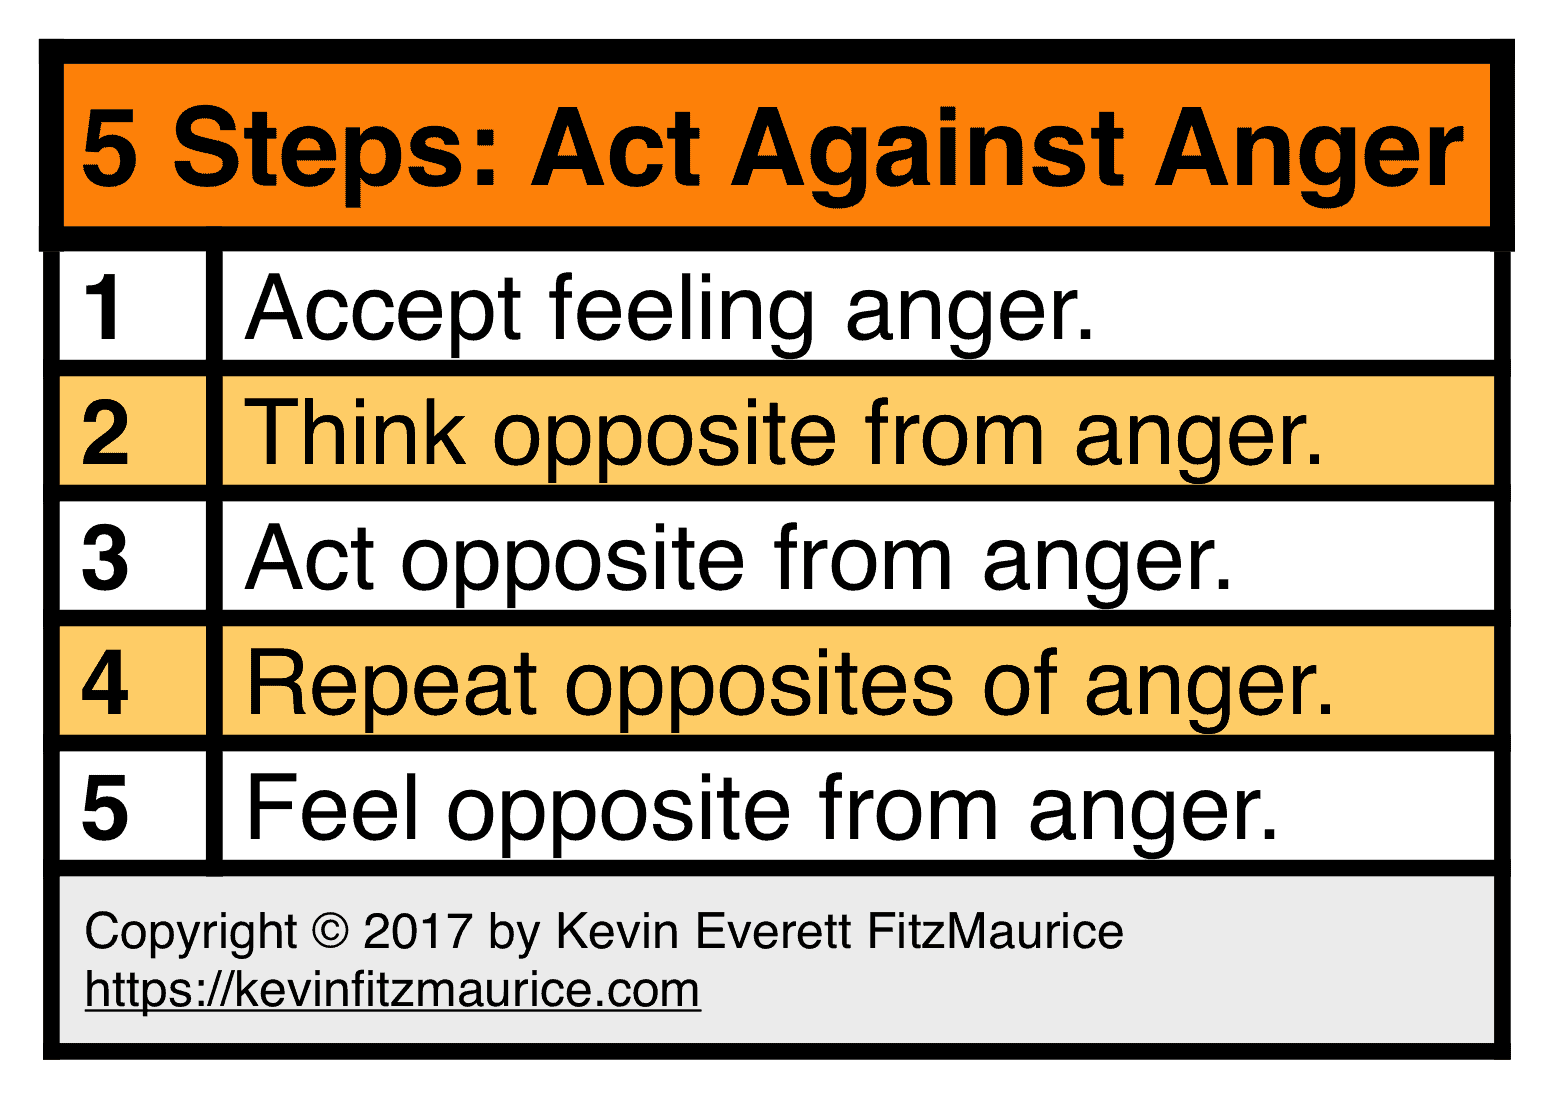 Act Against Anger